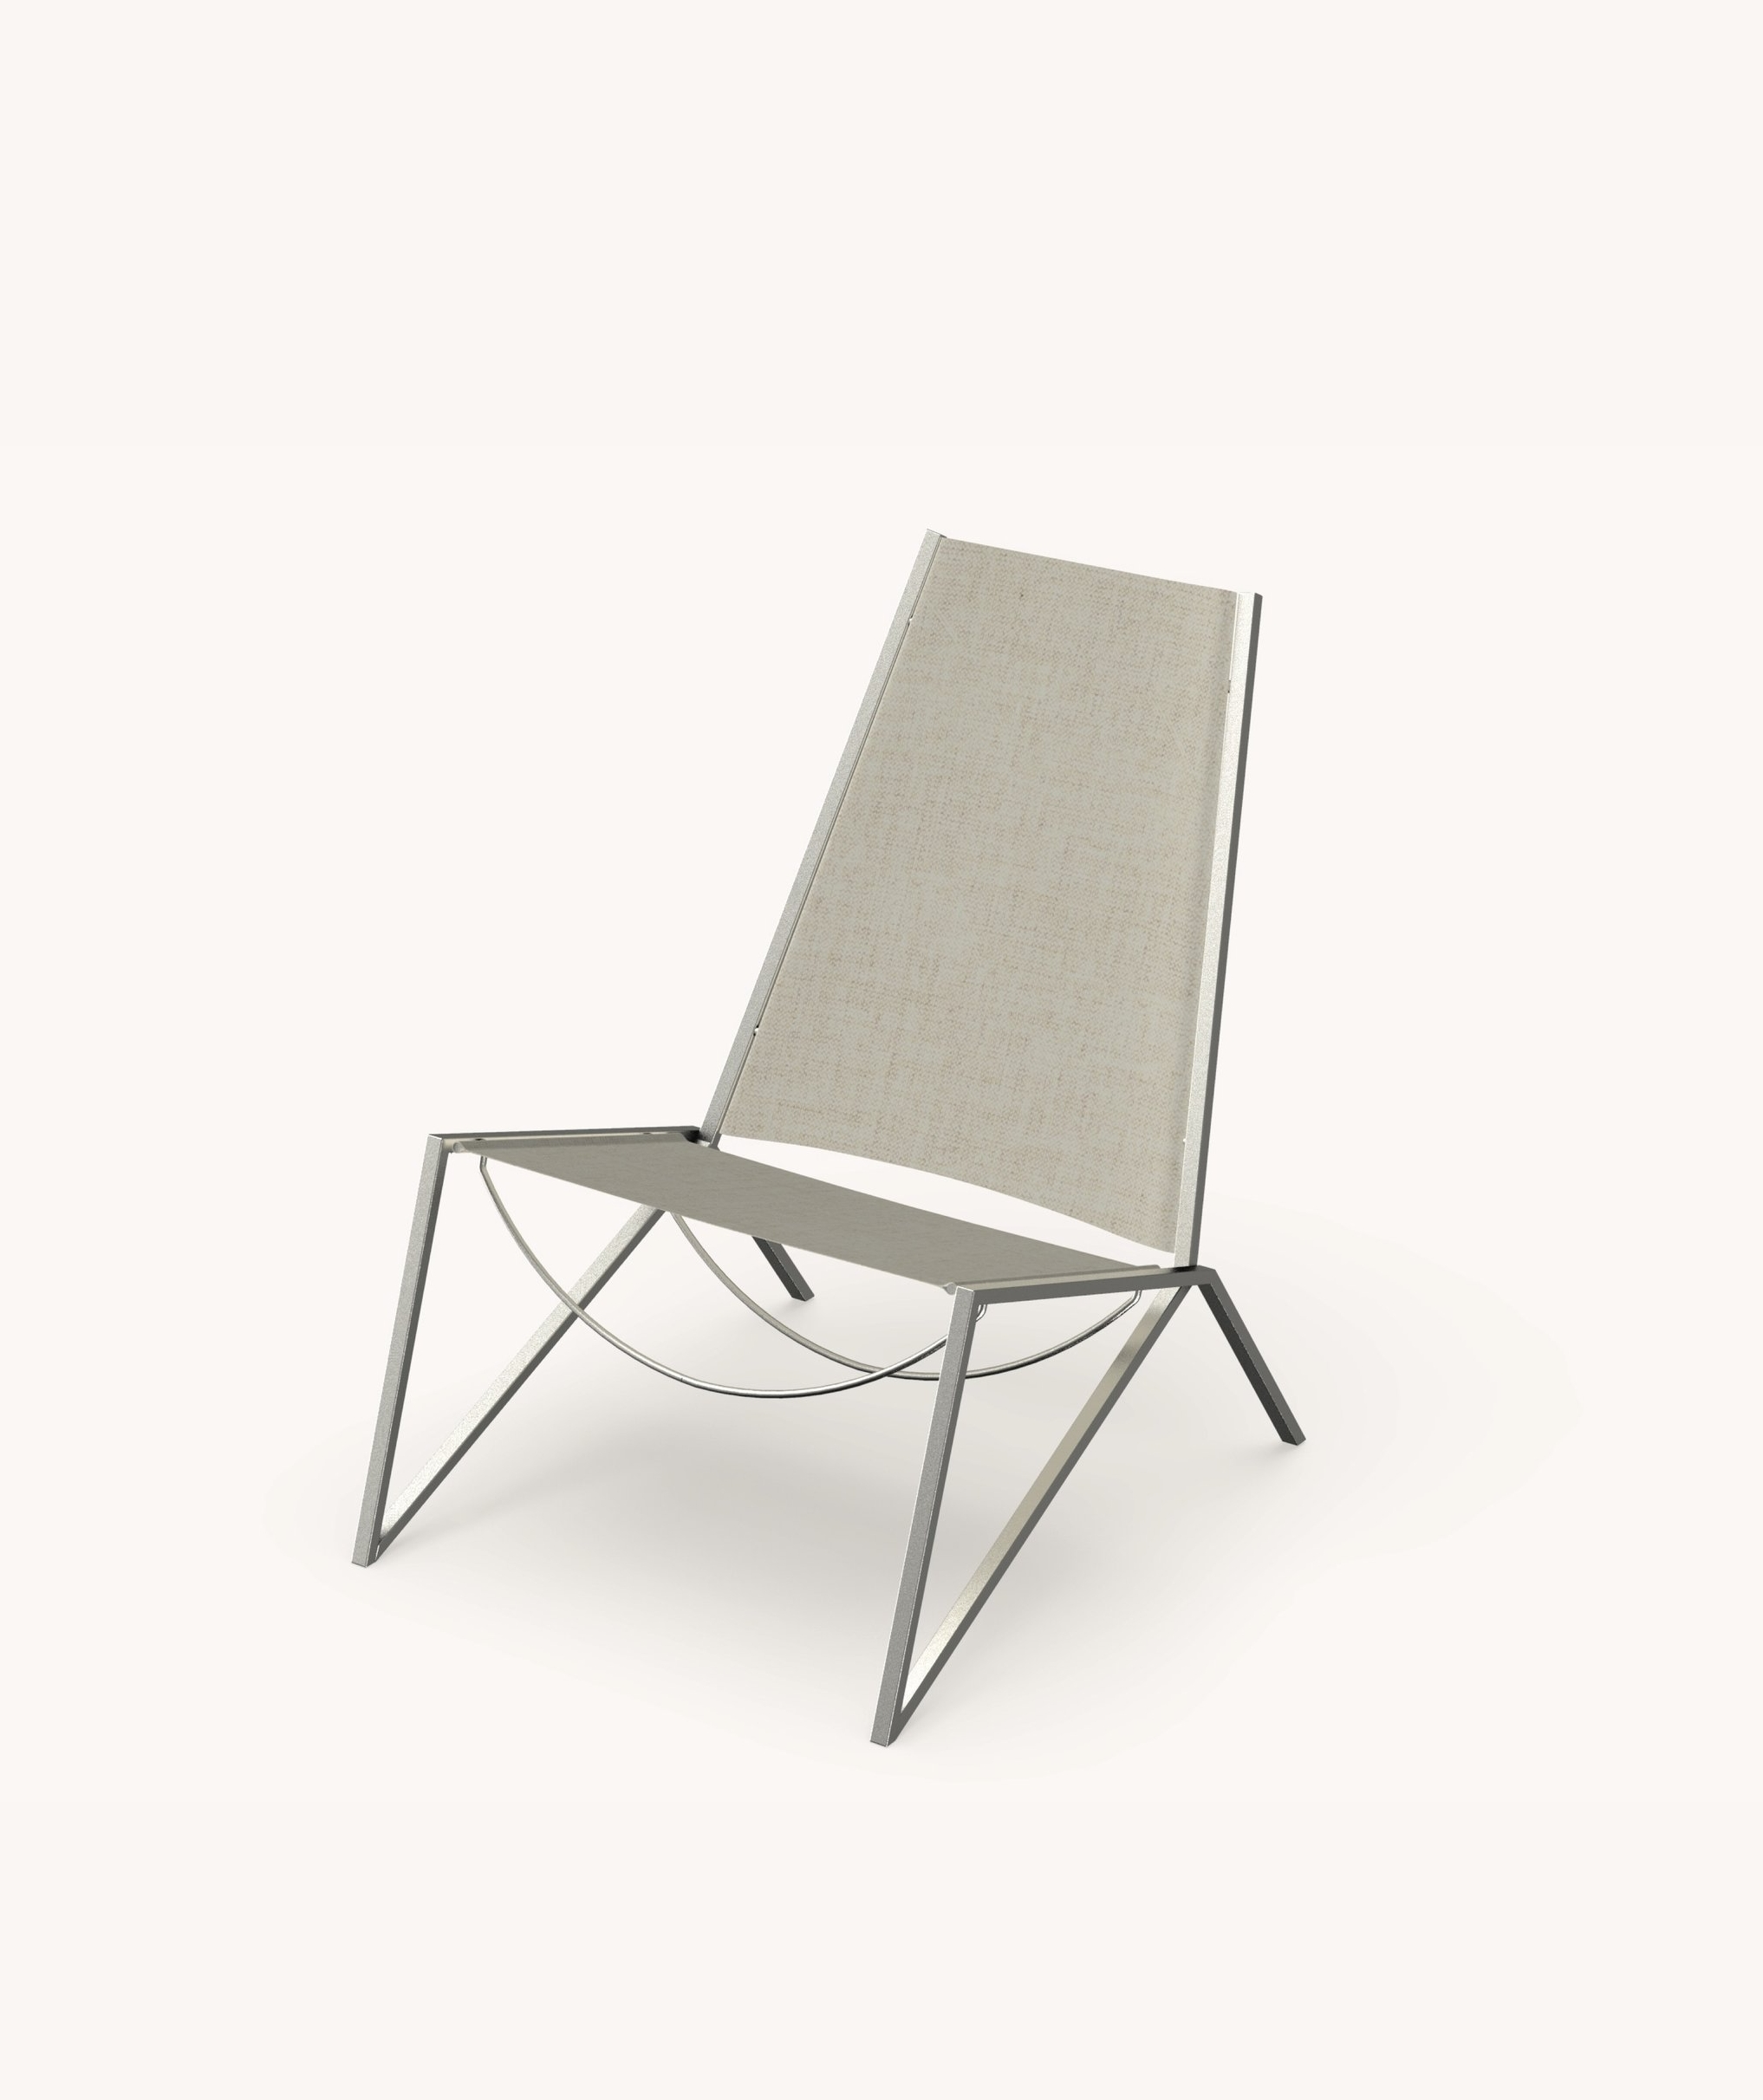 SUNCHAIR. LE PONT - MADE TO ORDER. PRICE ON REQUEST